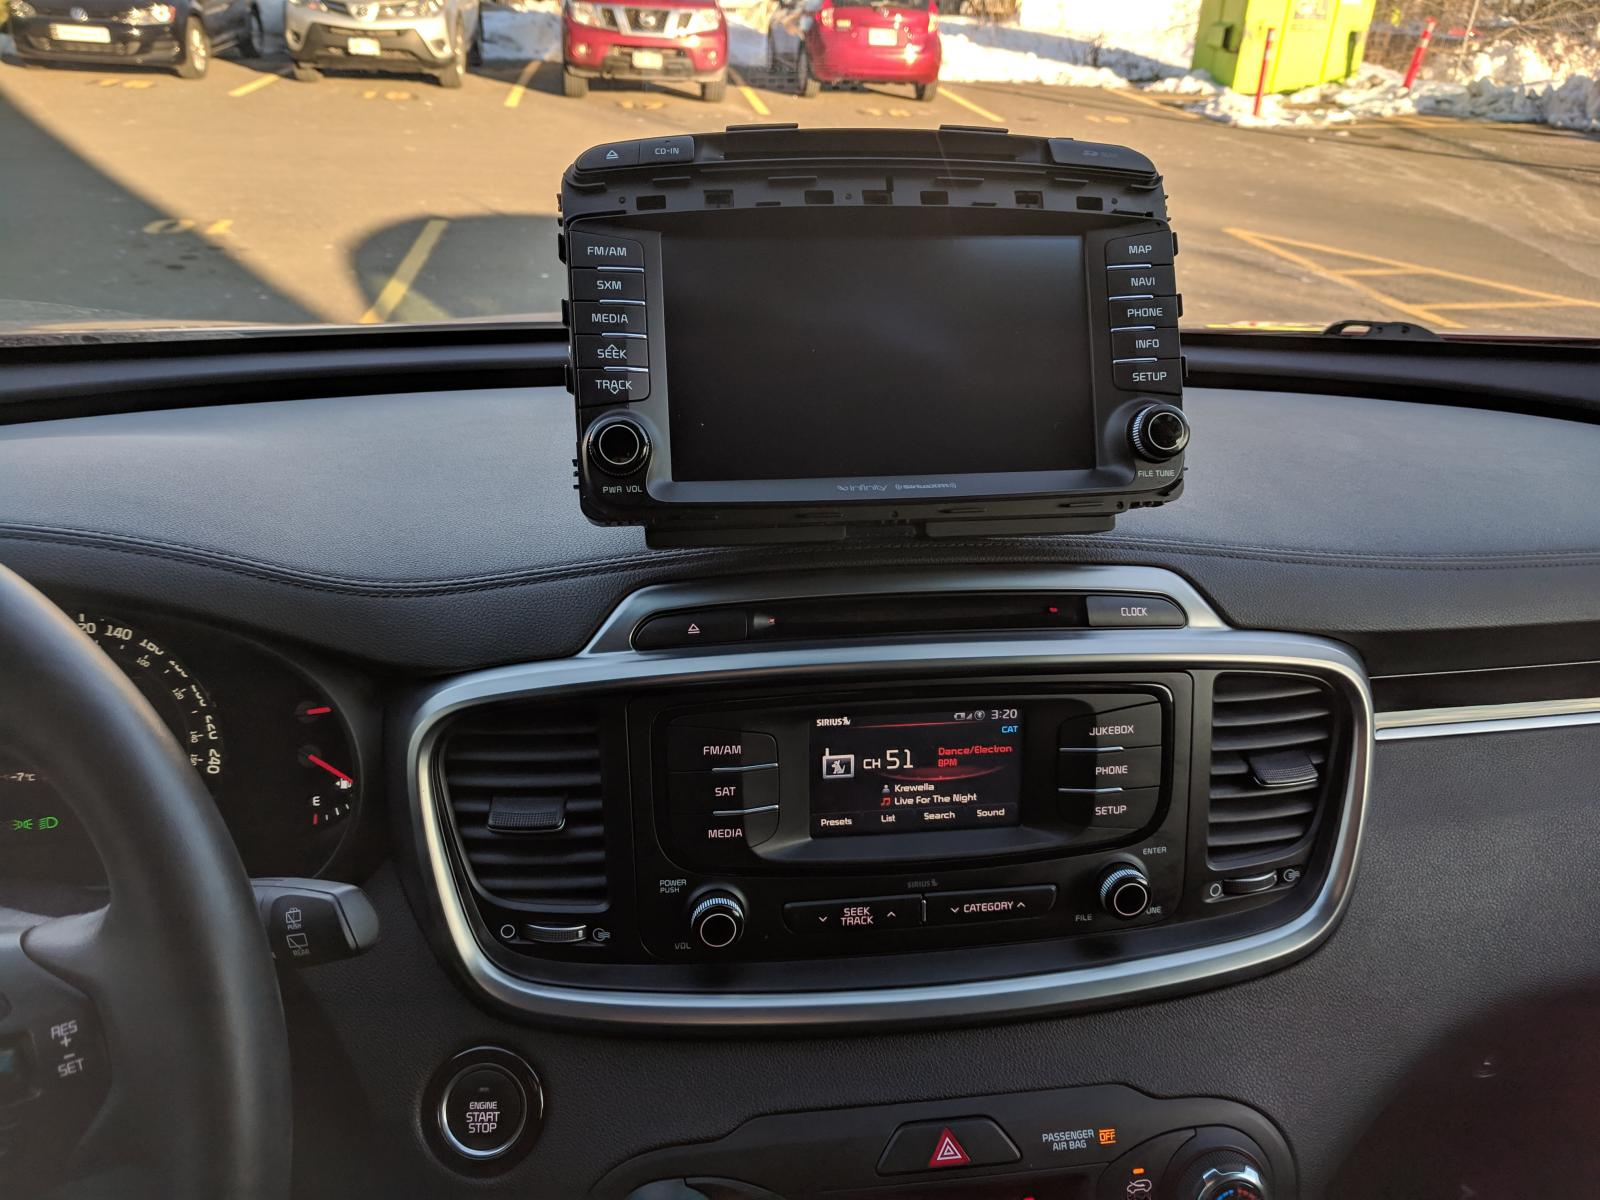 2016 Sorento Ex Radio Upgrade From Uvo To Bigger Screen